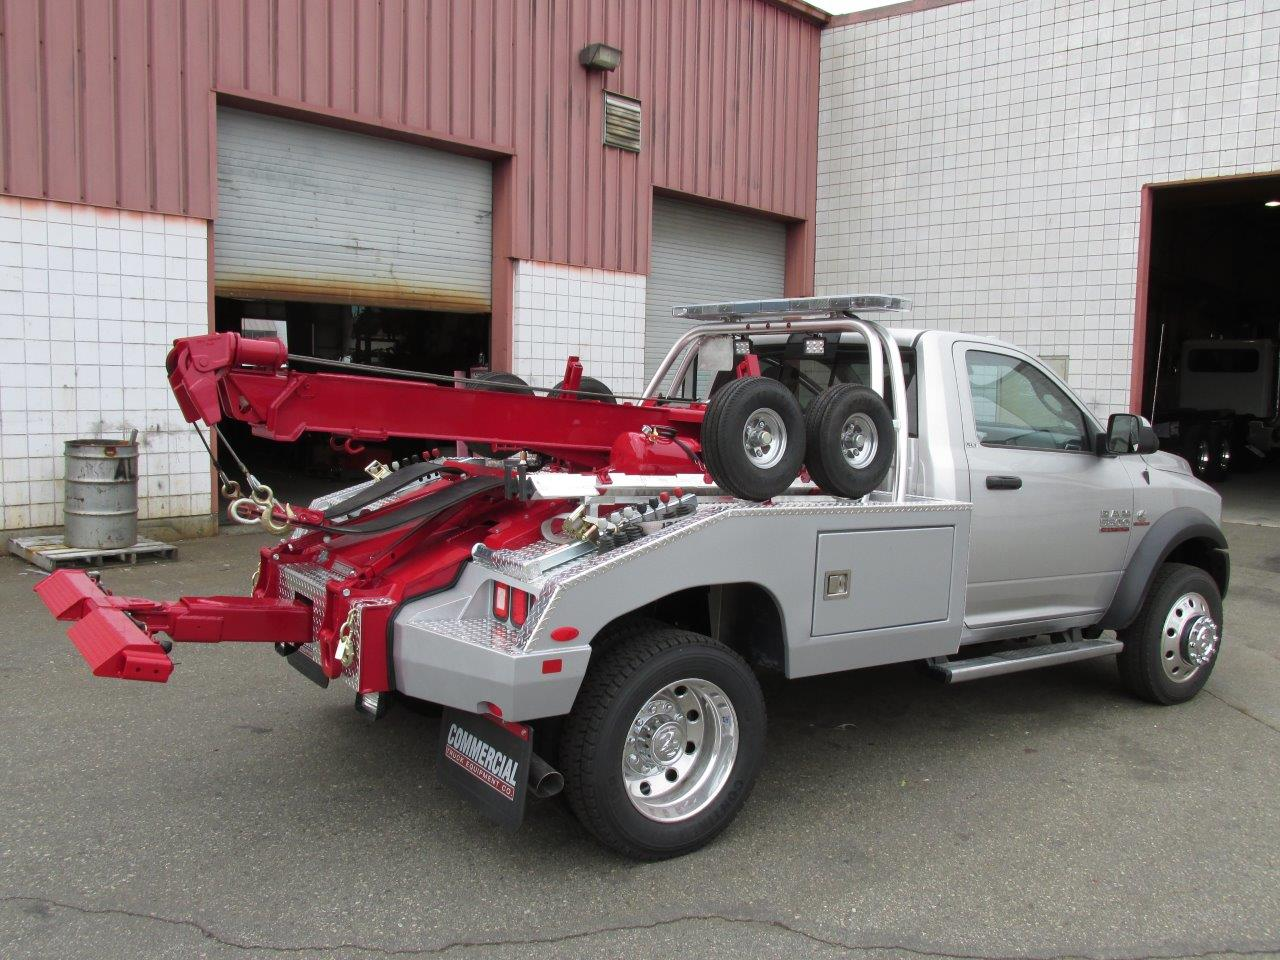 towing recovery vehicle equipment commercial truck equipment. Black Bedroom Furniture Sets. Home Design Ideas